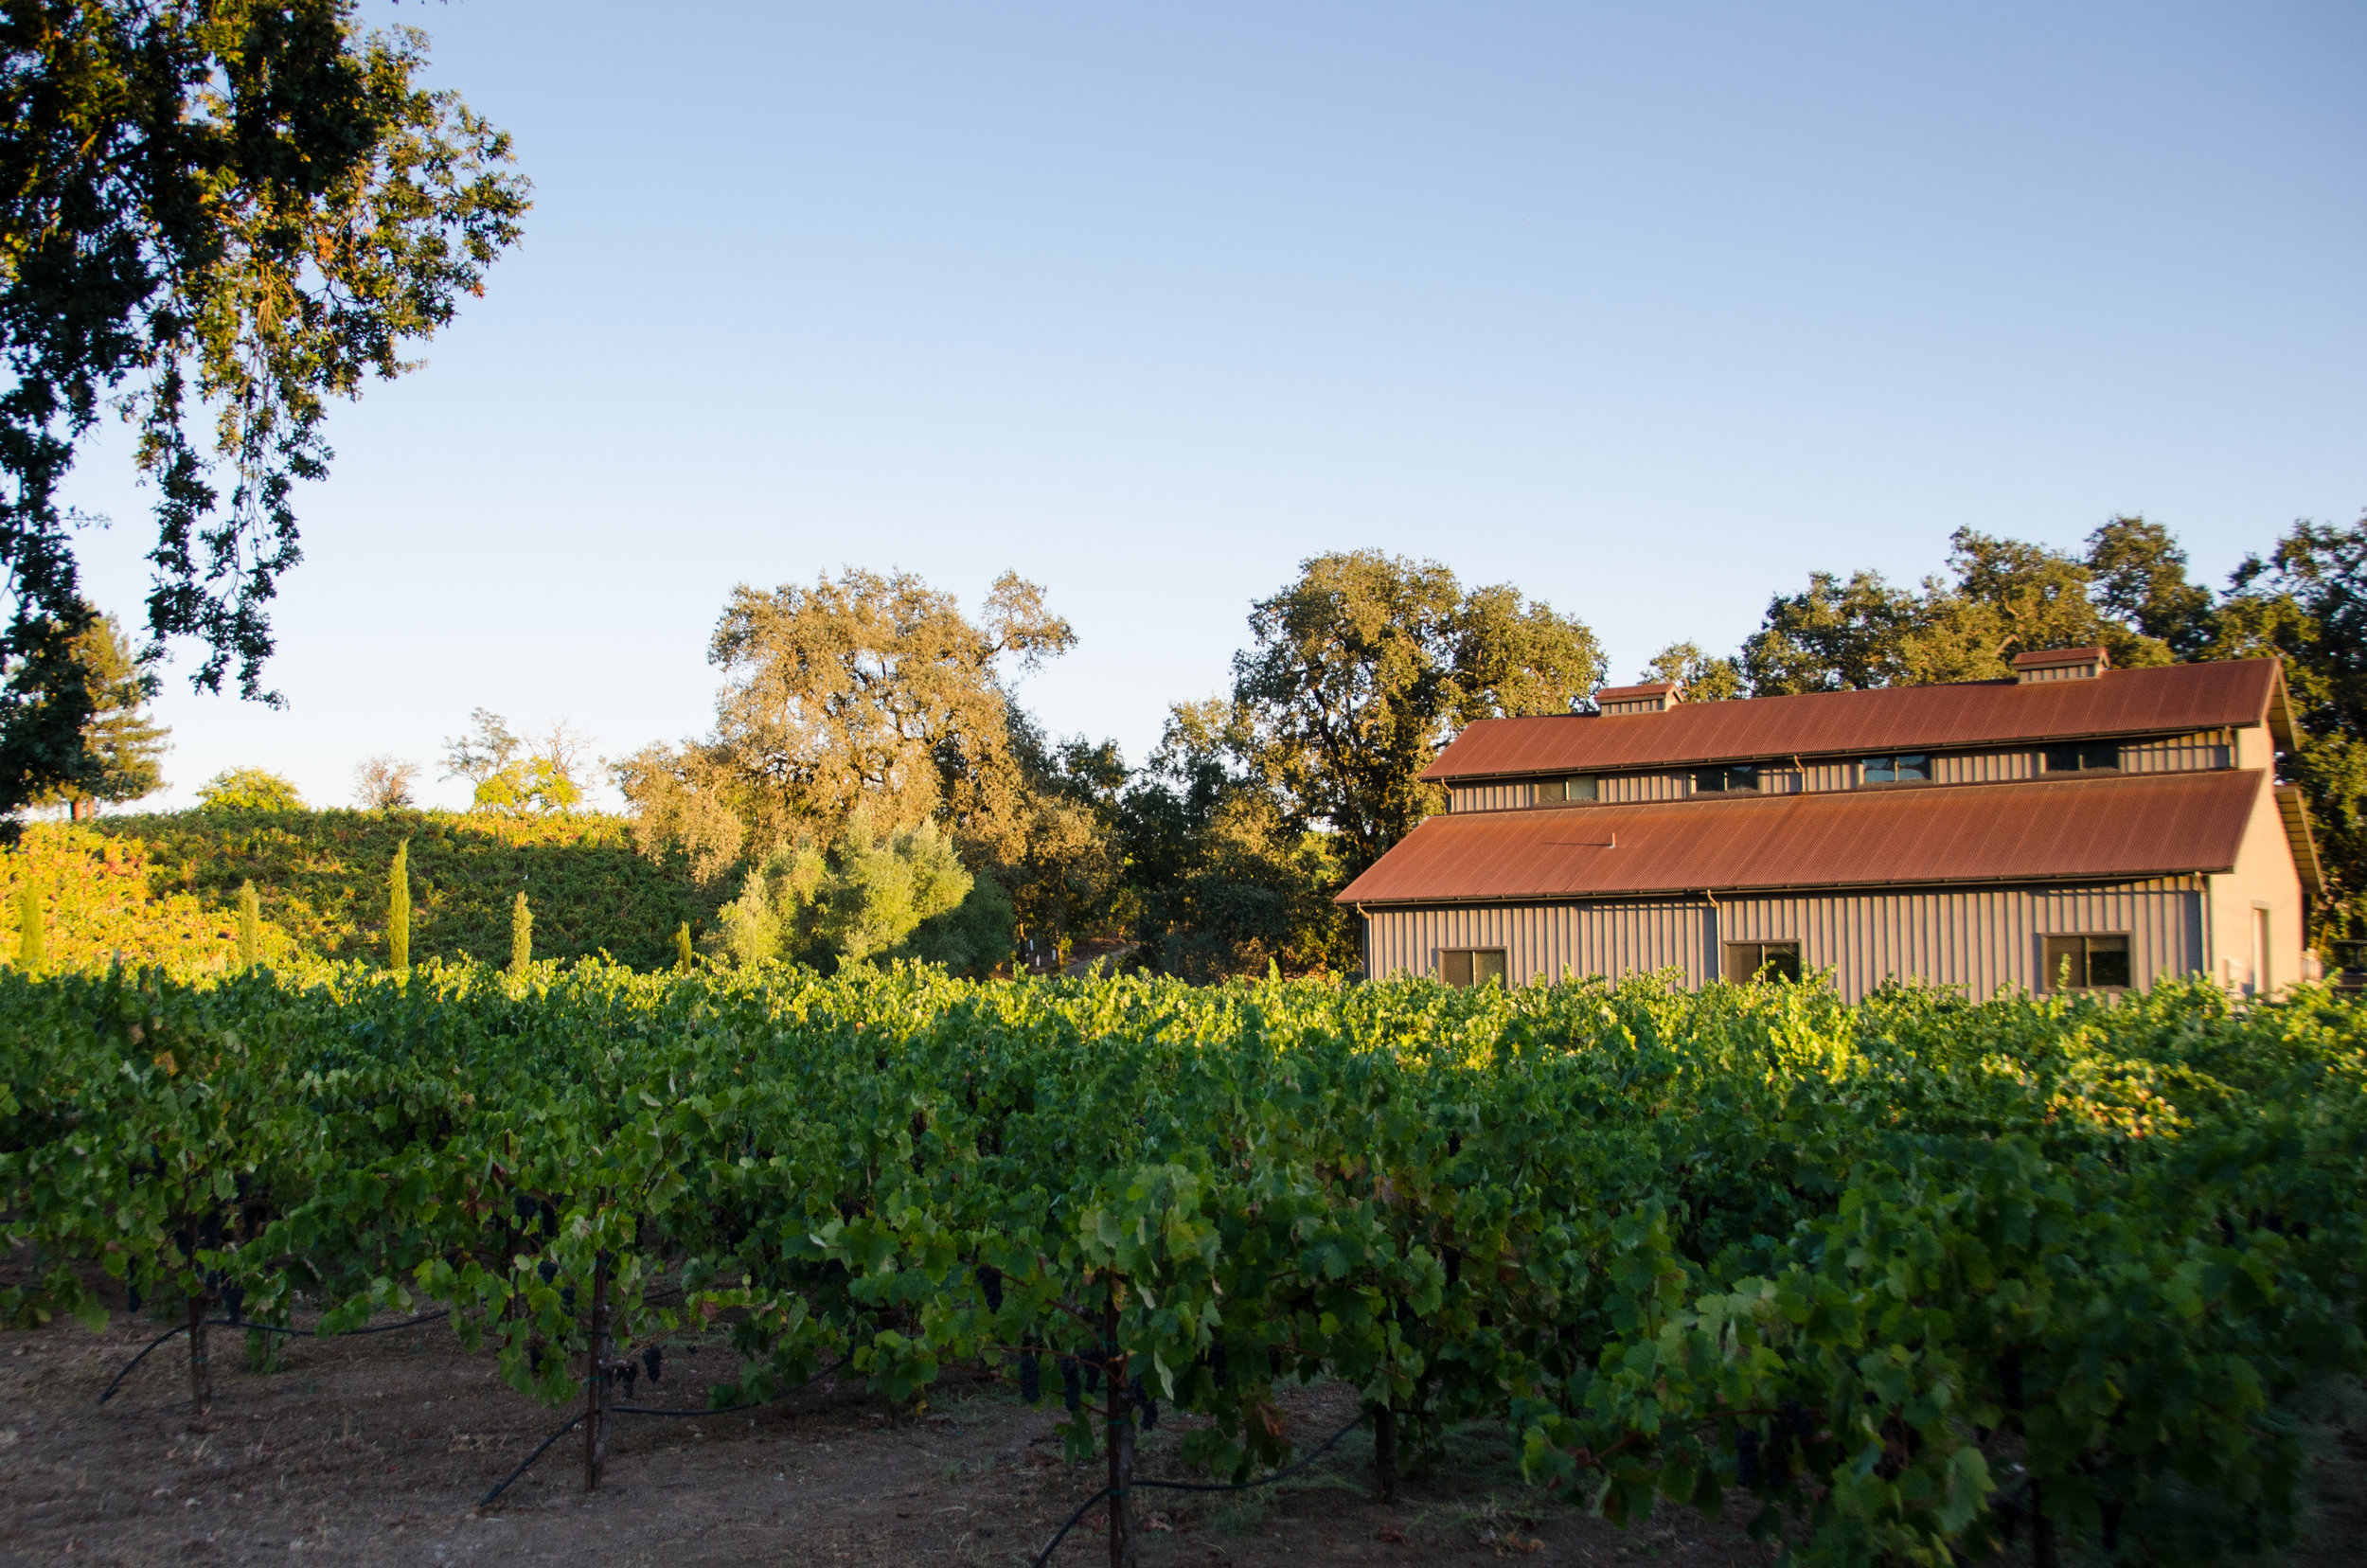 Street view of Due Ruscelli Winery